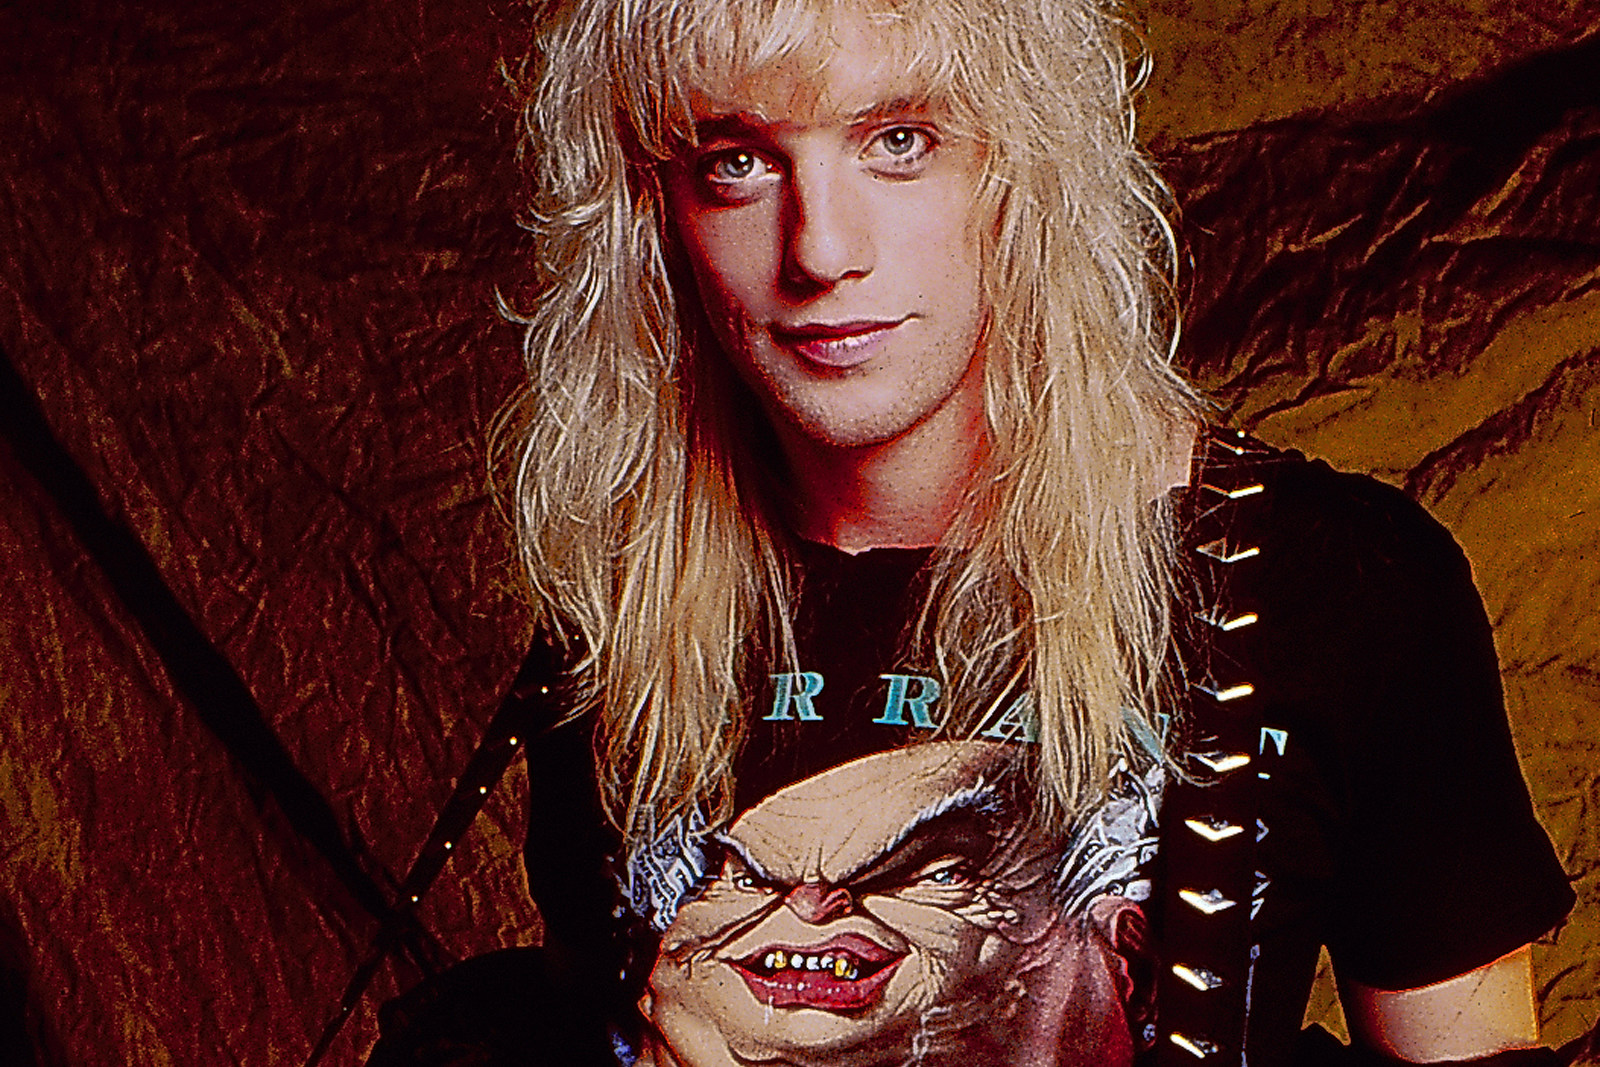 When Warrant's Jani Lane Left Behind a Complicated Legacy